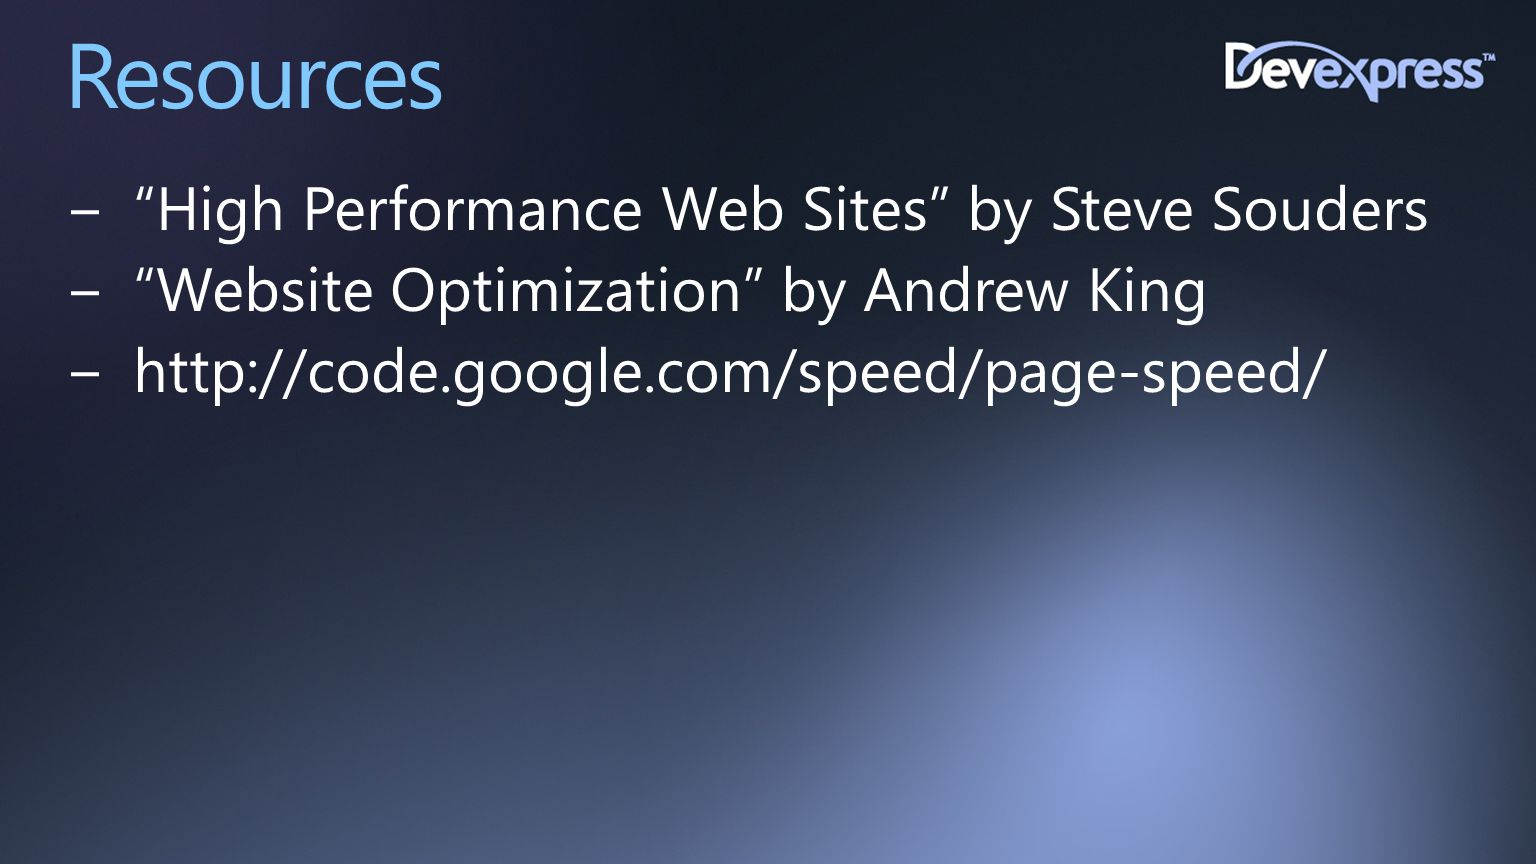 """Resources −""""High Performance Web Sites"""" by Steve Souders −""""Website Optimization"""" by Andrew King −http://code.google.com/speed/page-speed/"""